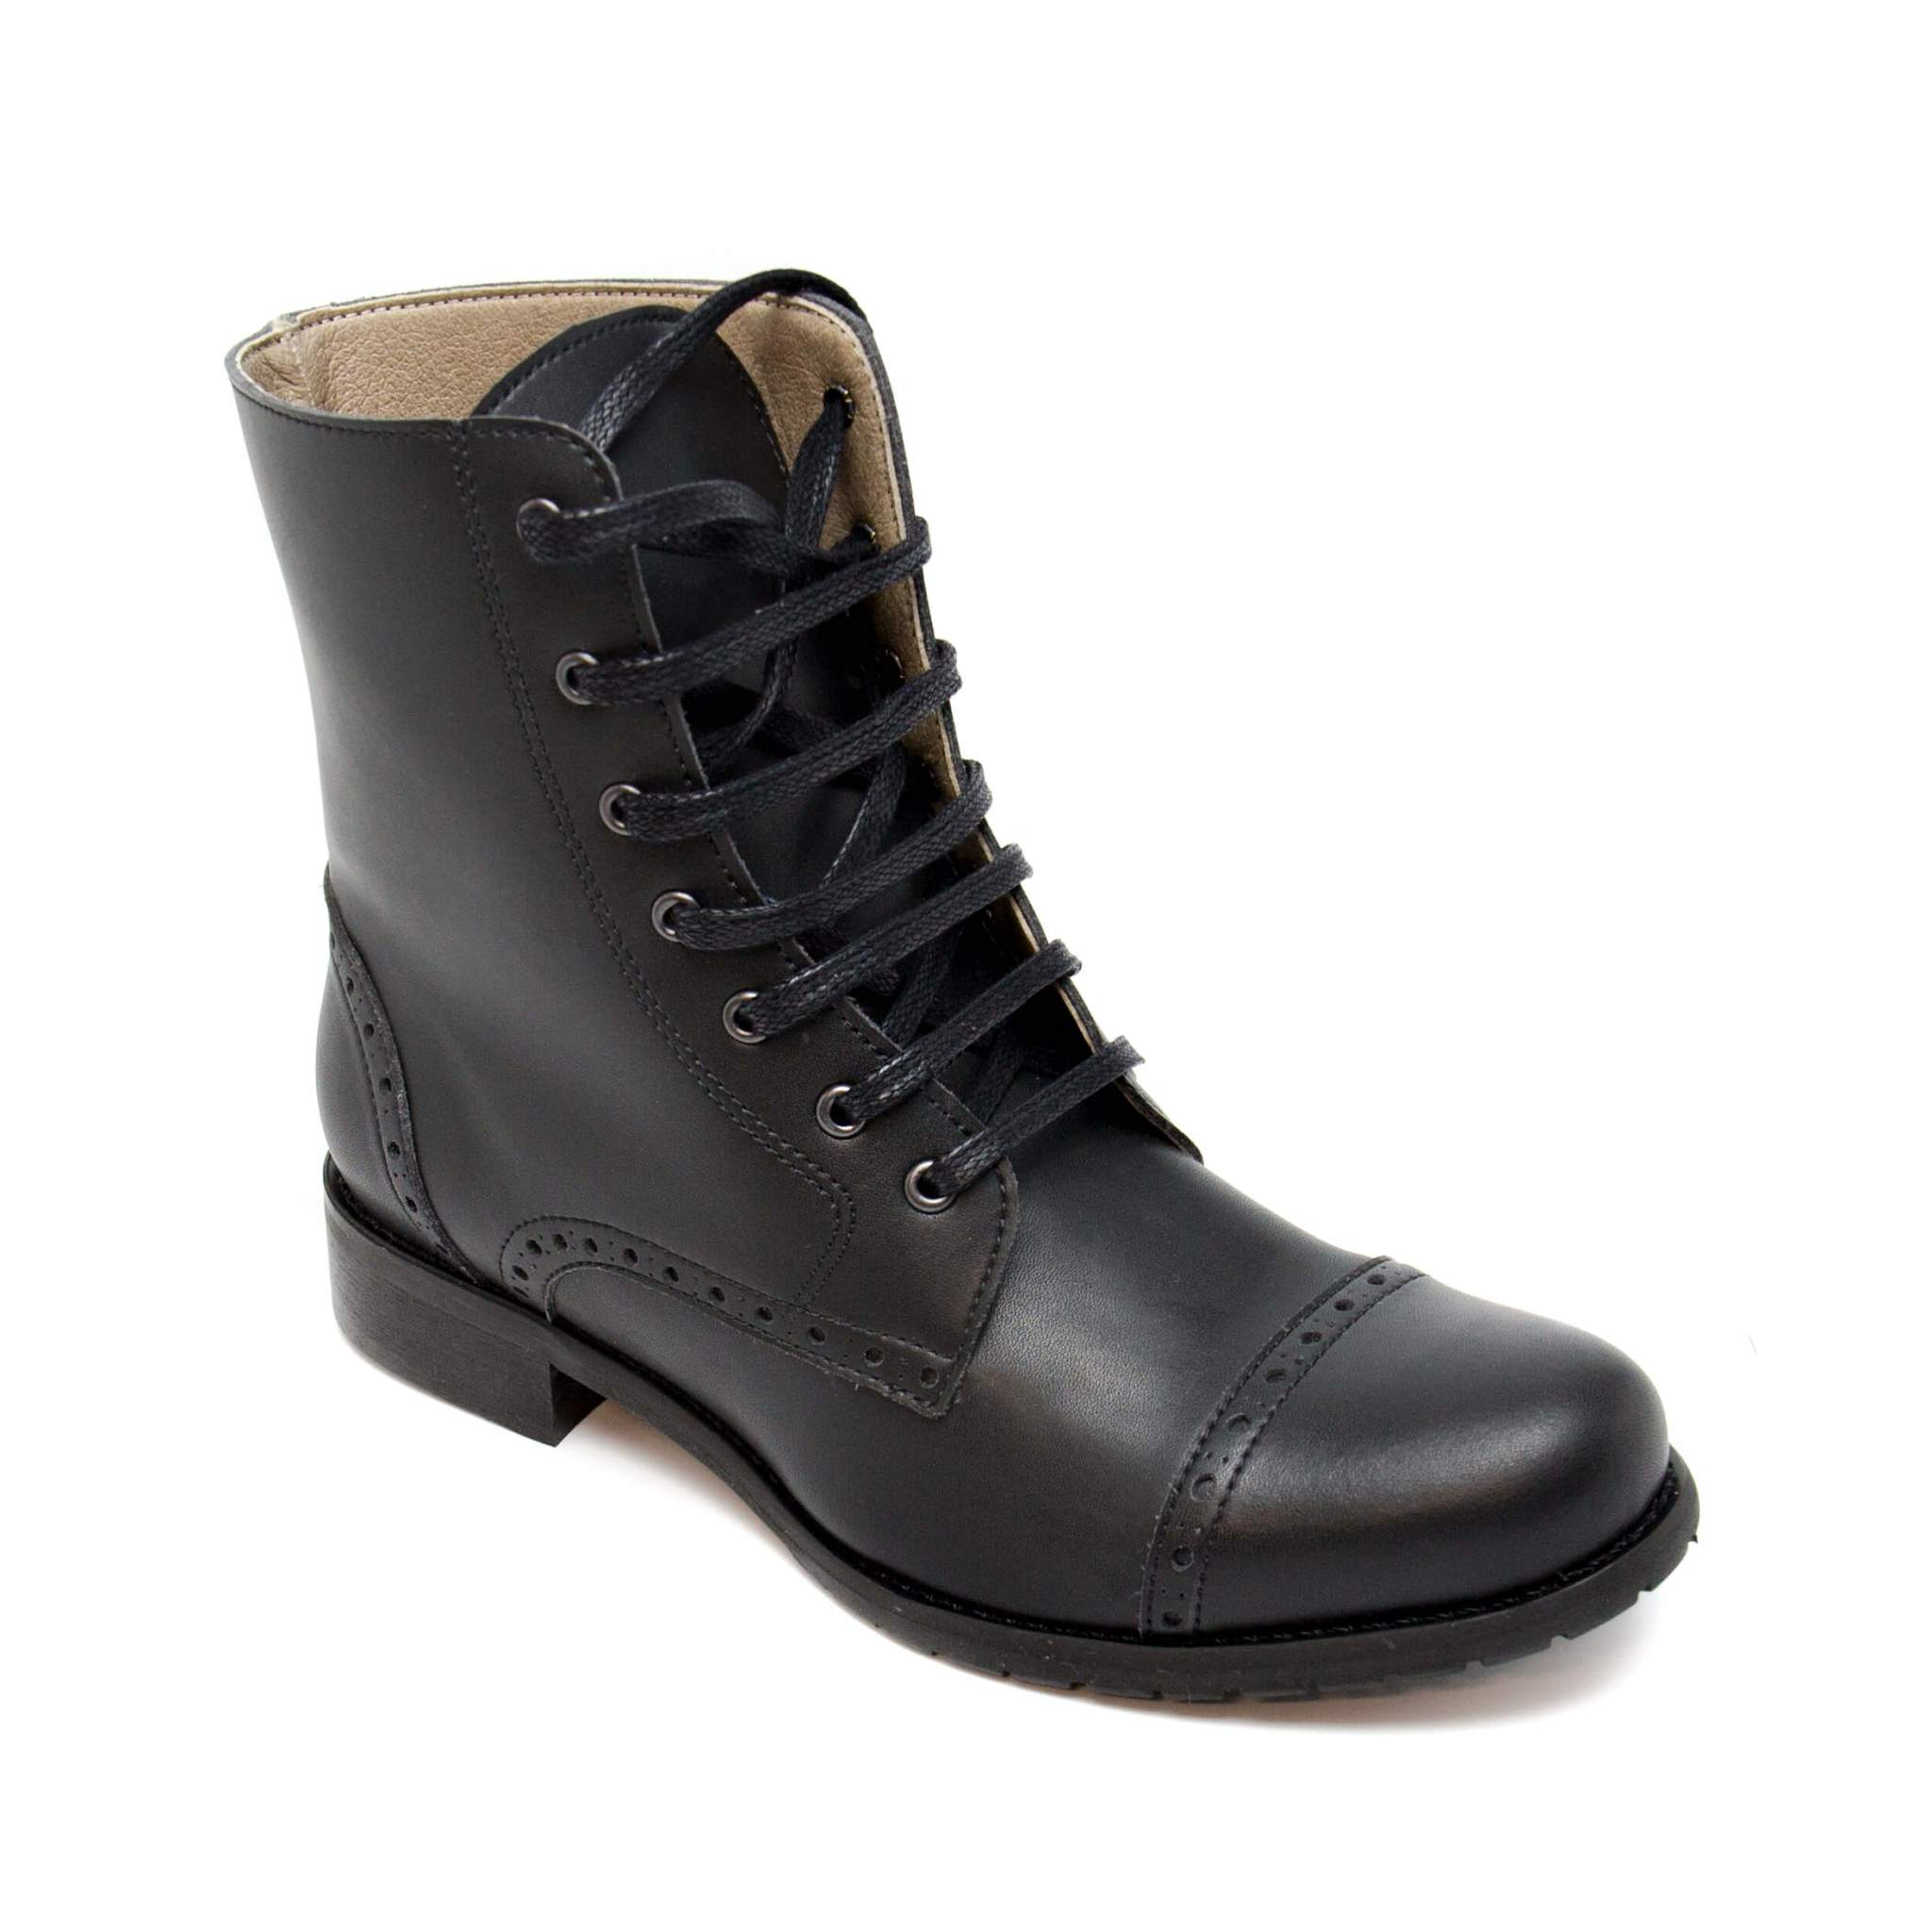 Alba Vegan Lace Up Boots, Women´s Sizes